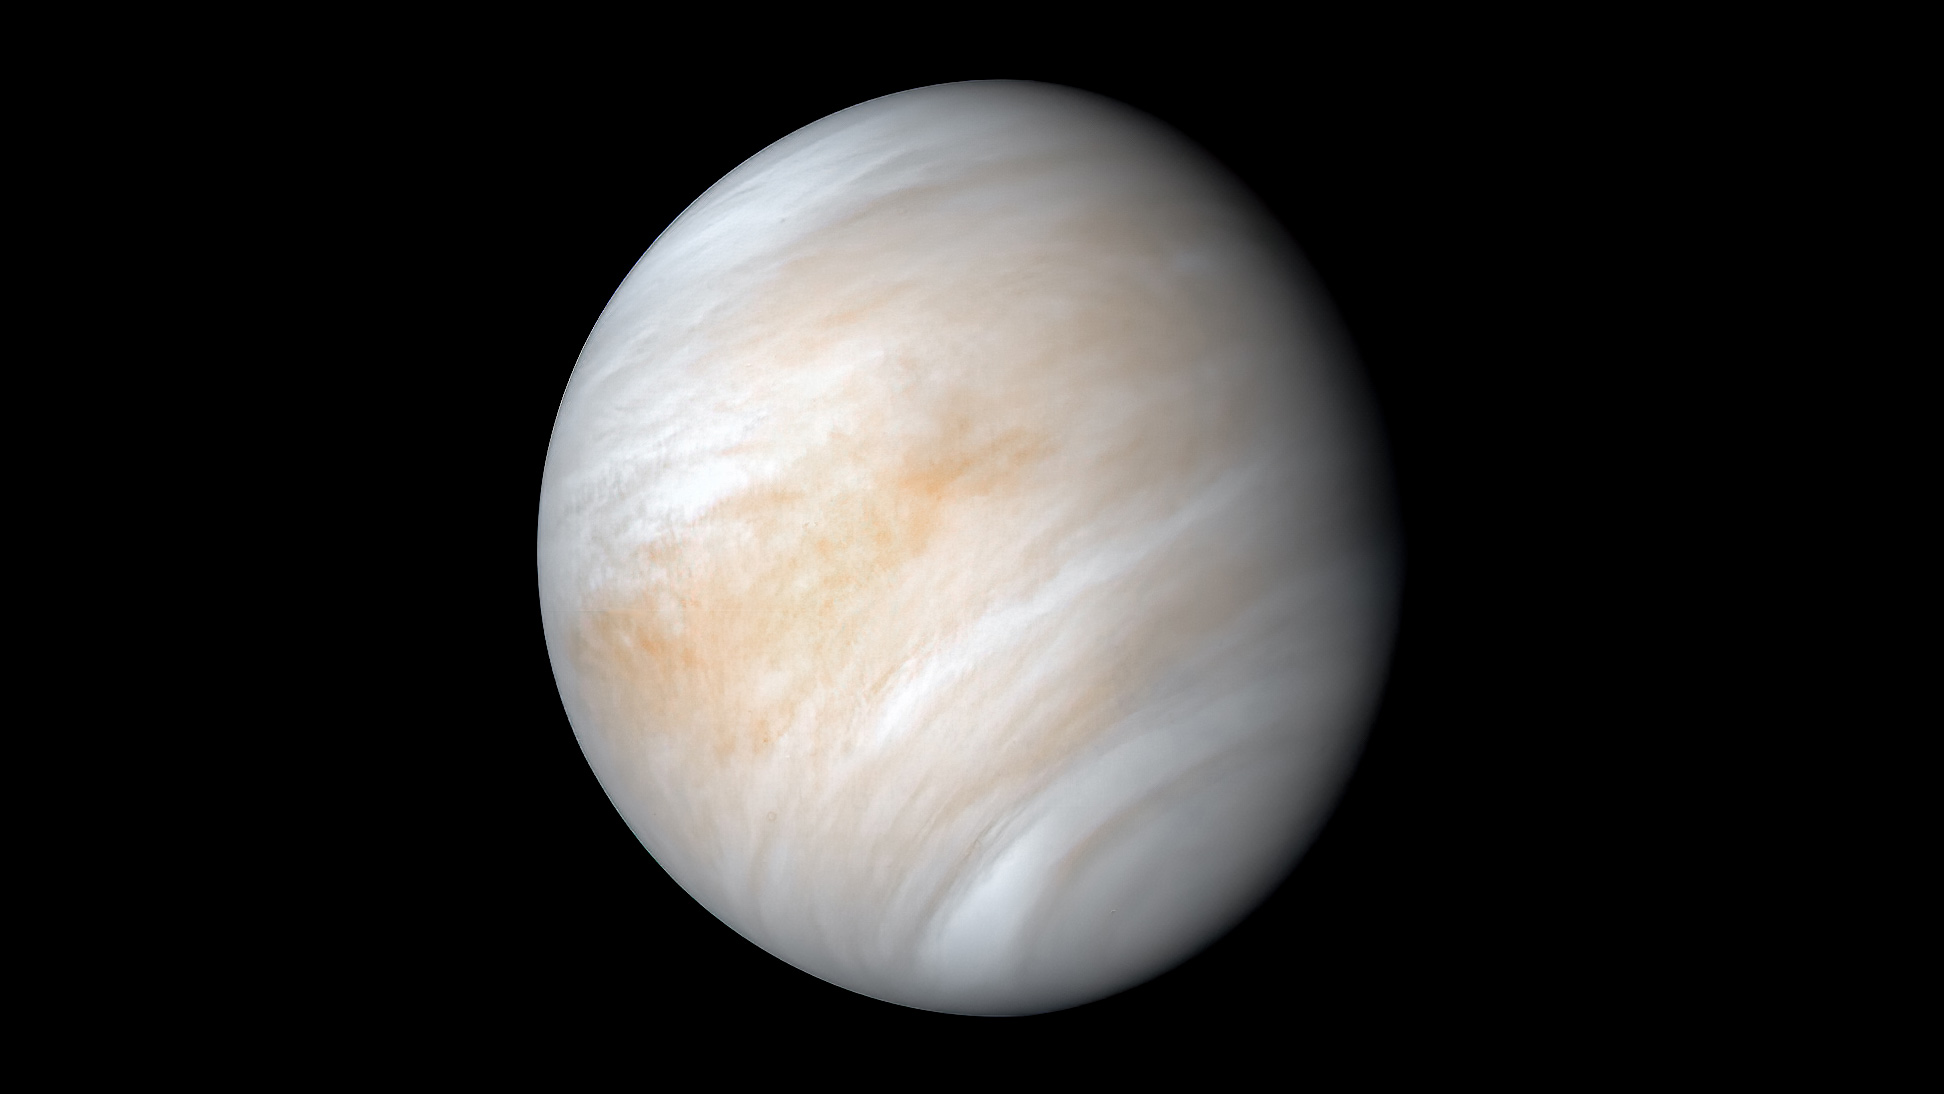 We need to go to Venus as soon as possible